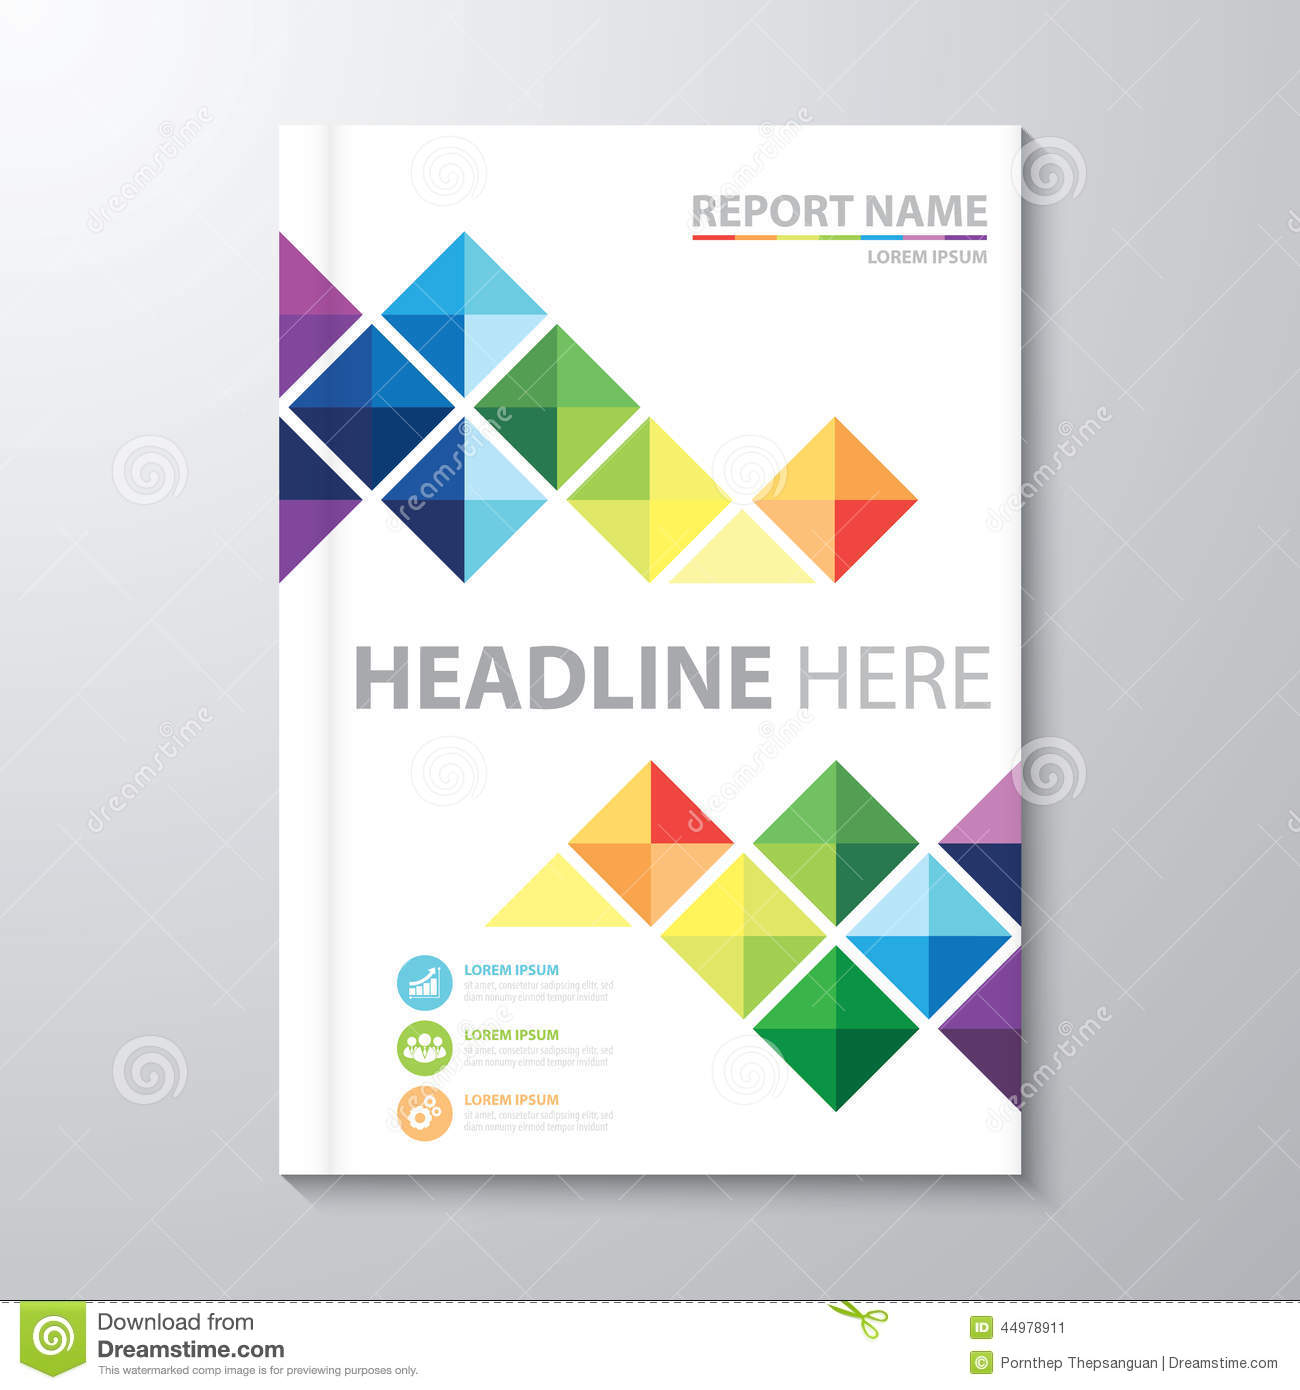 word front cover templates report cover page templates report – Free Report Cover Templates